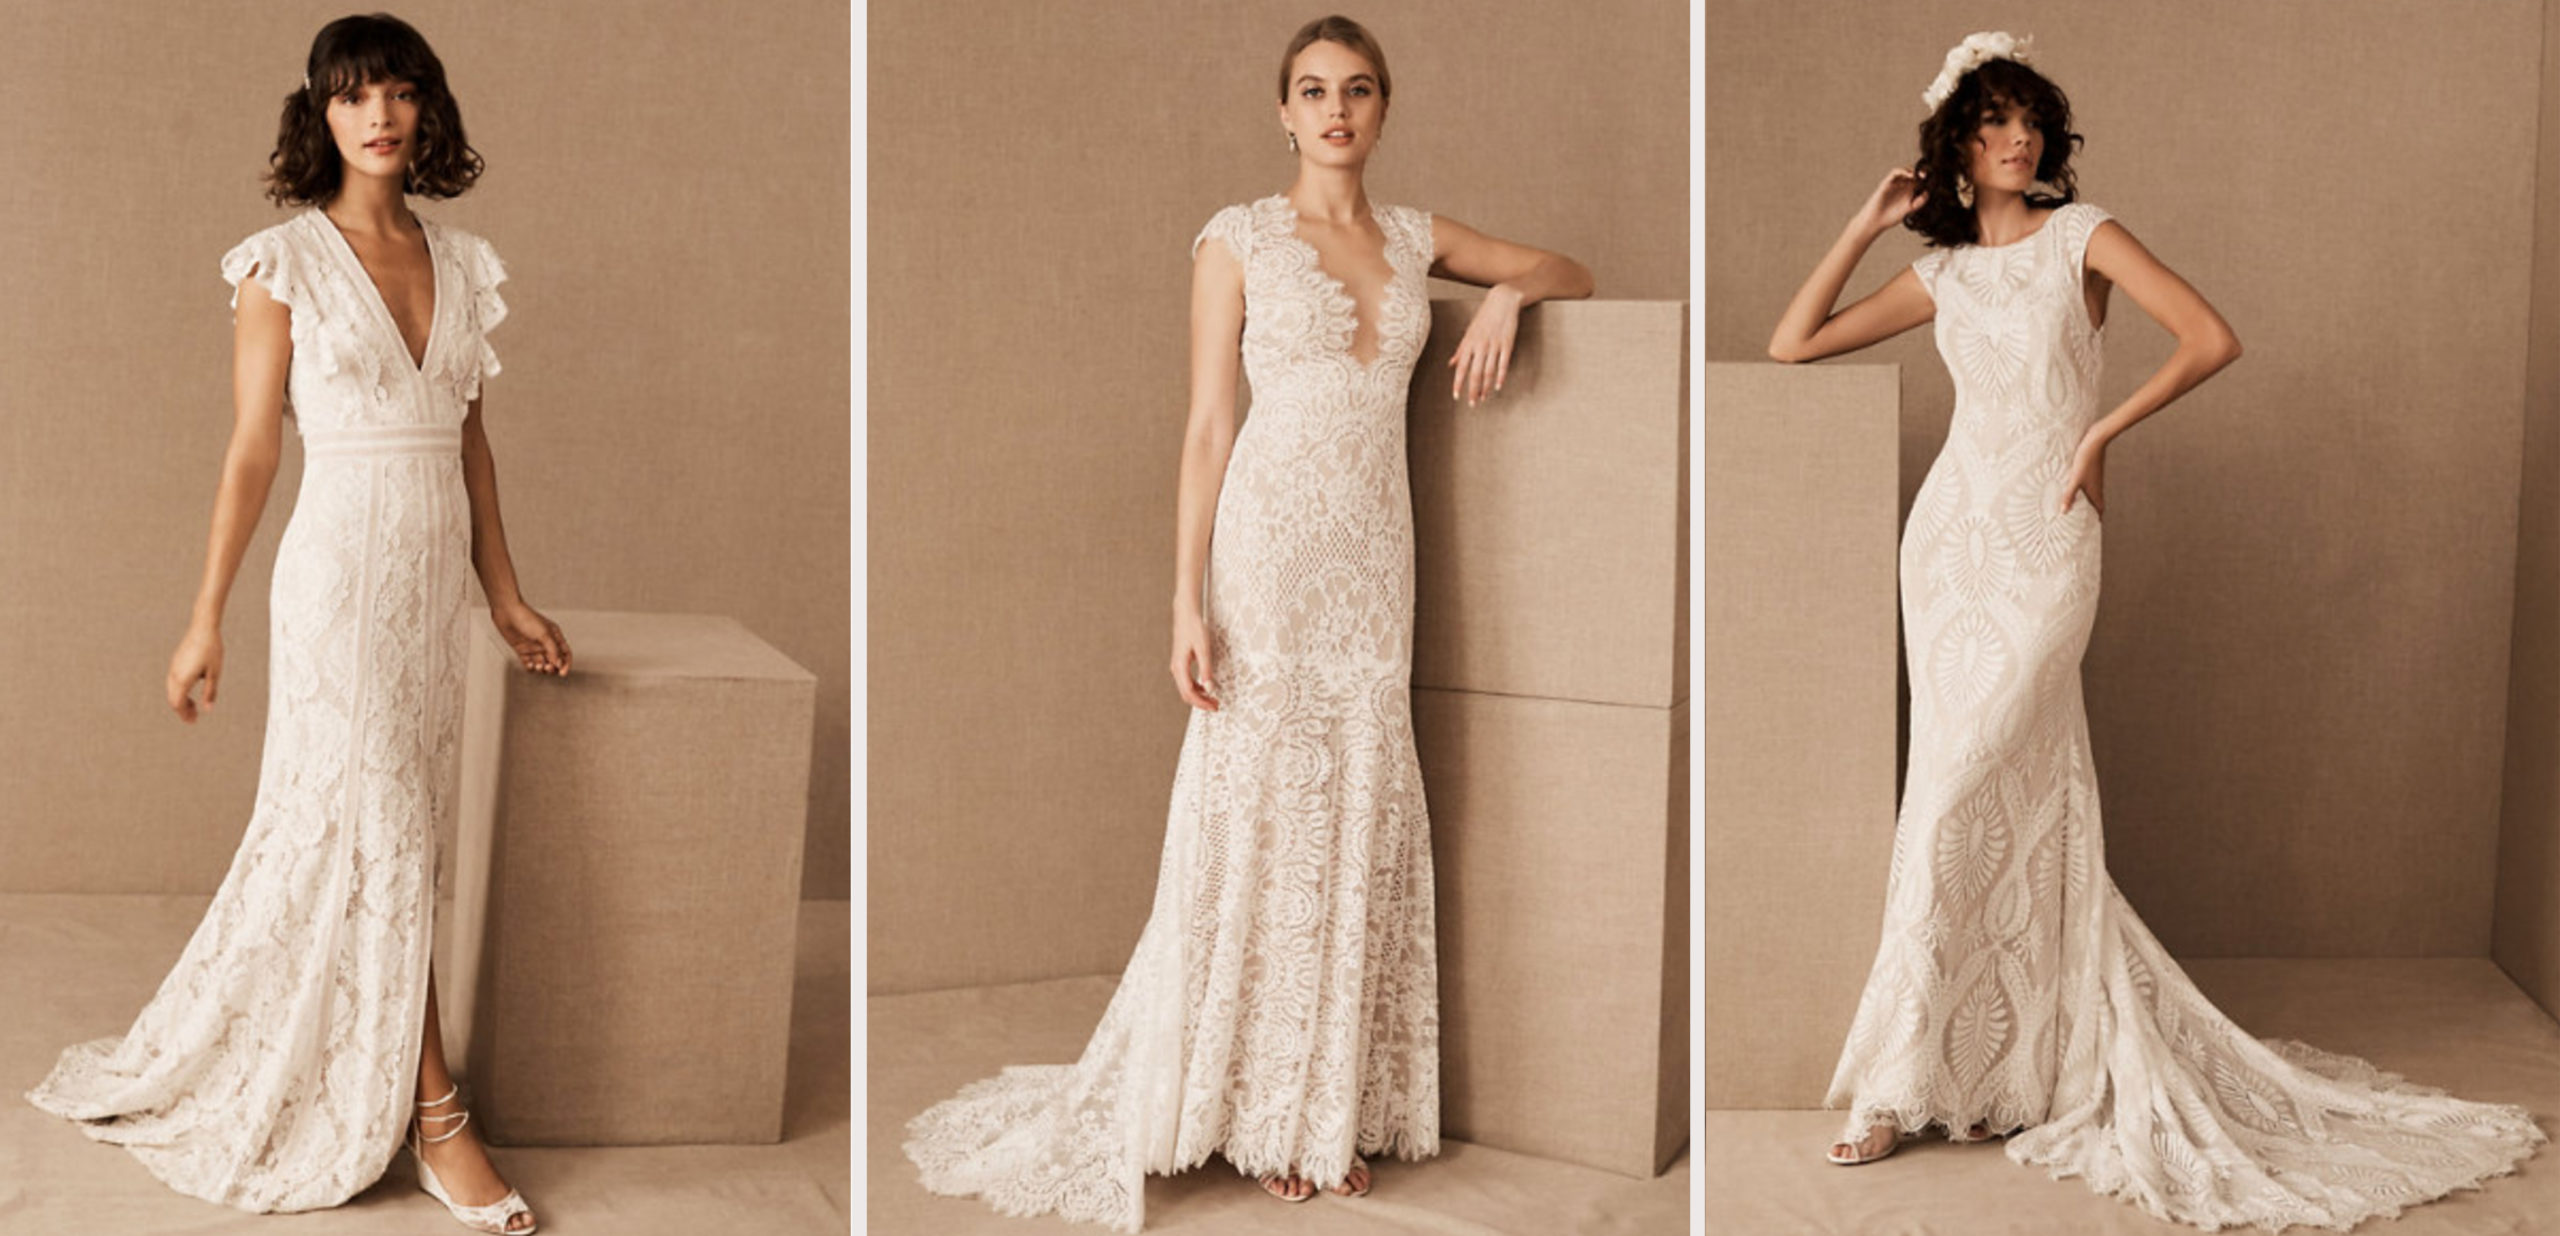 Gowns by BHLDN